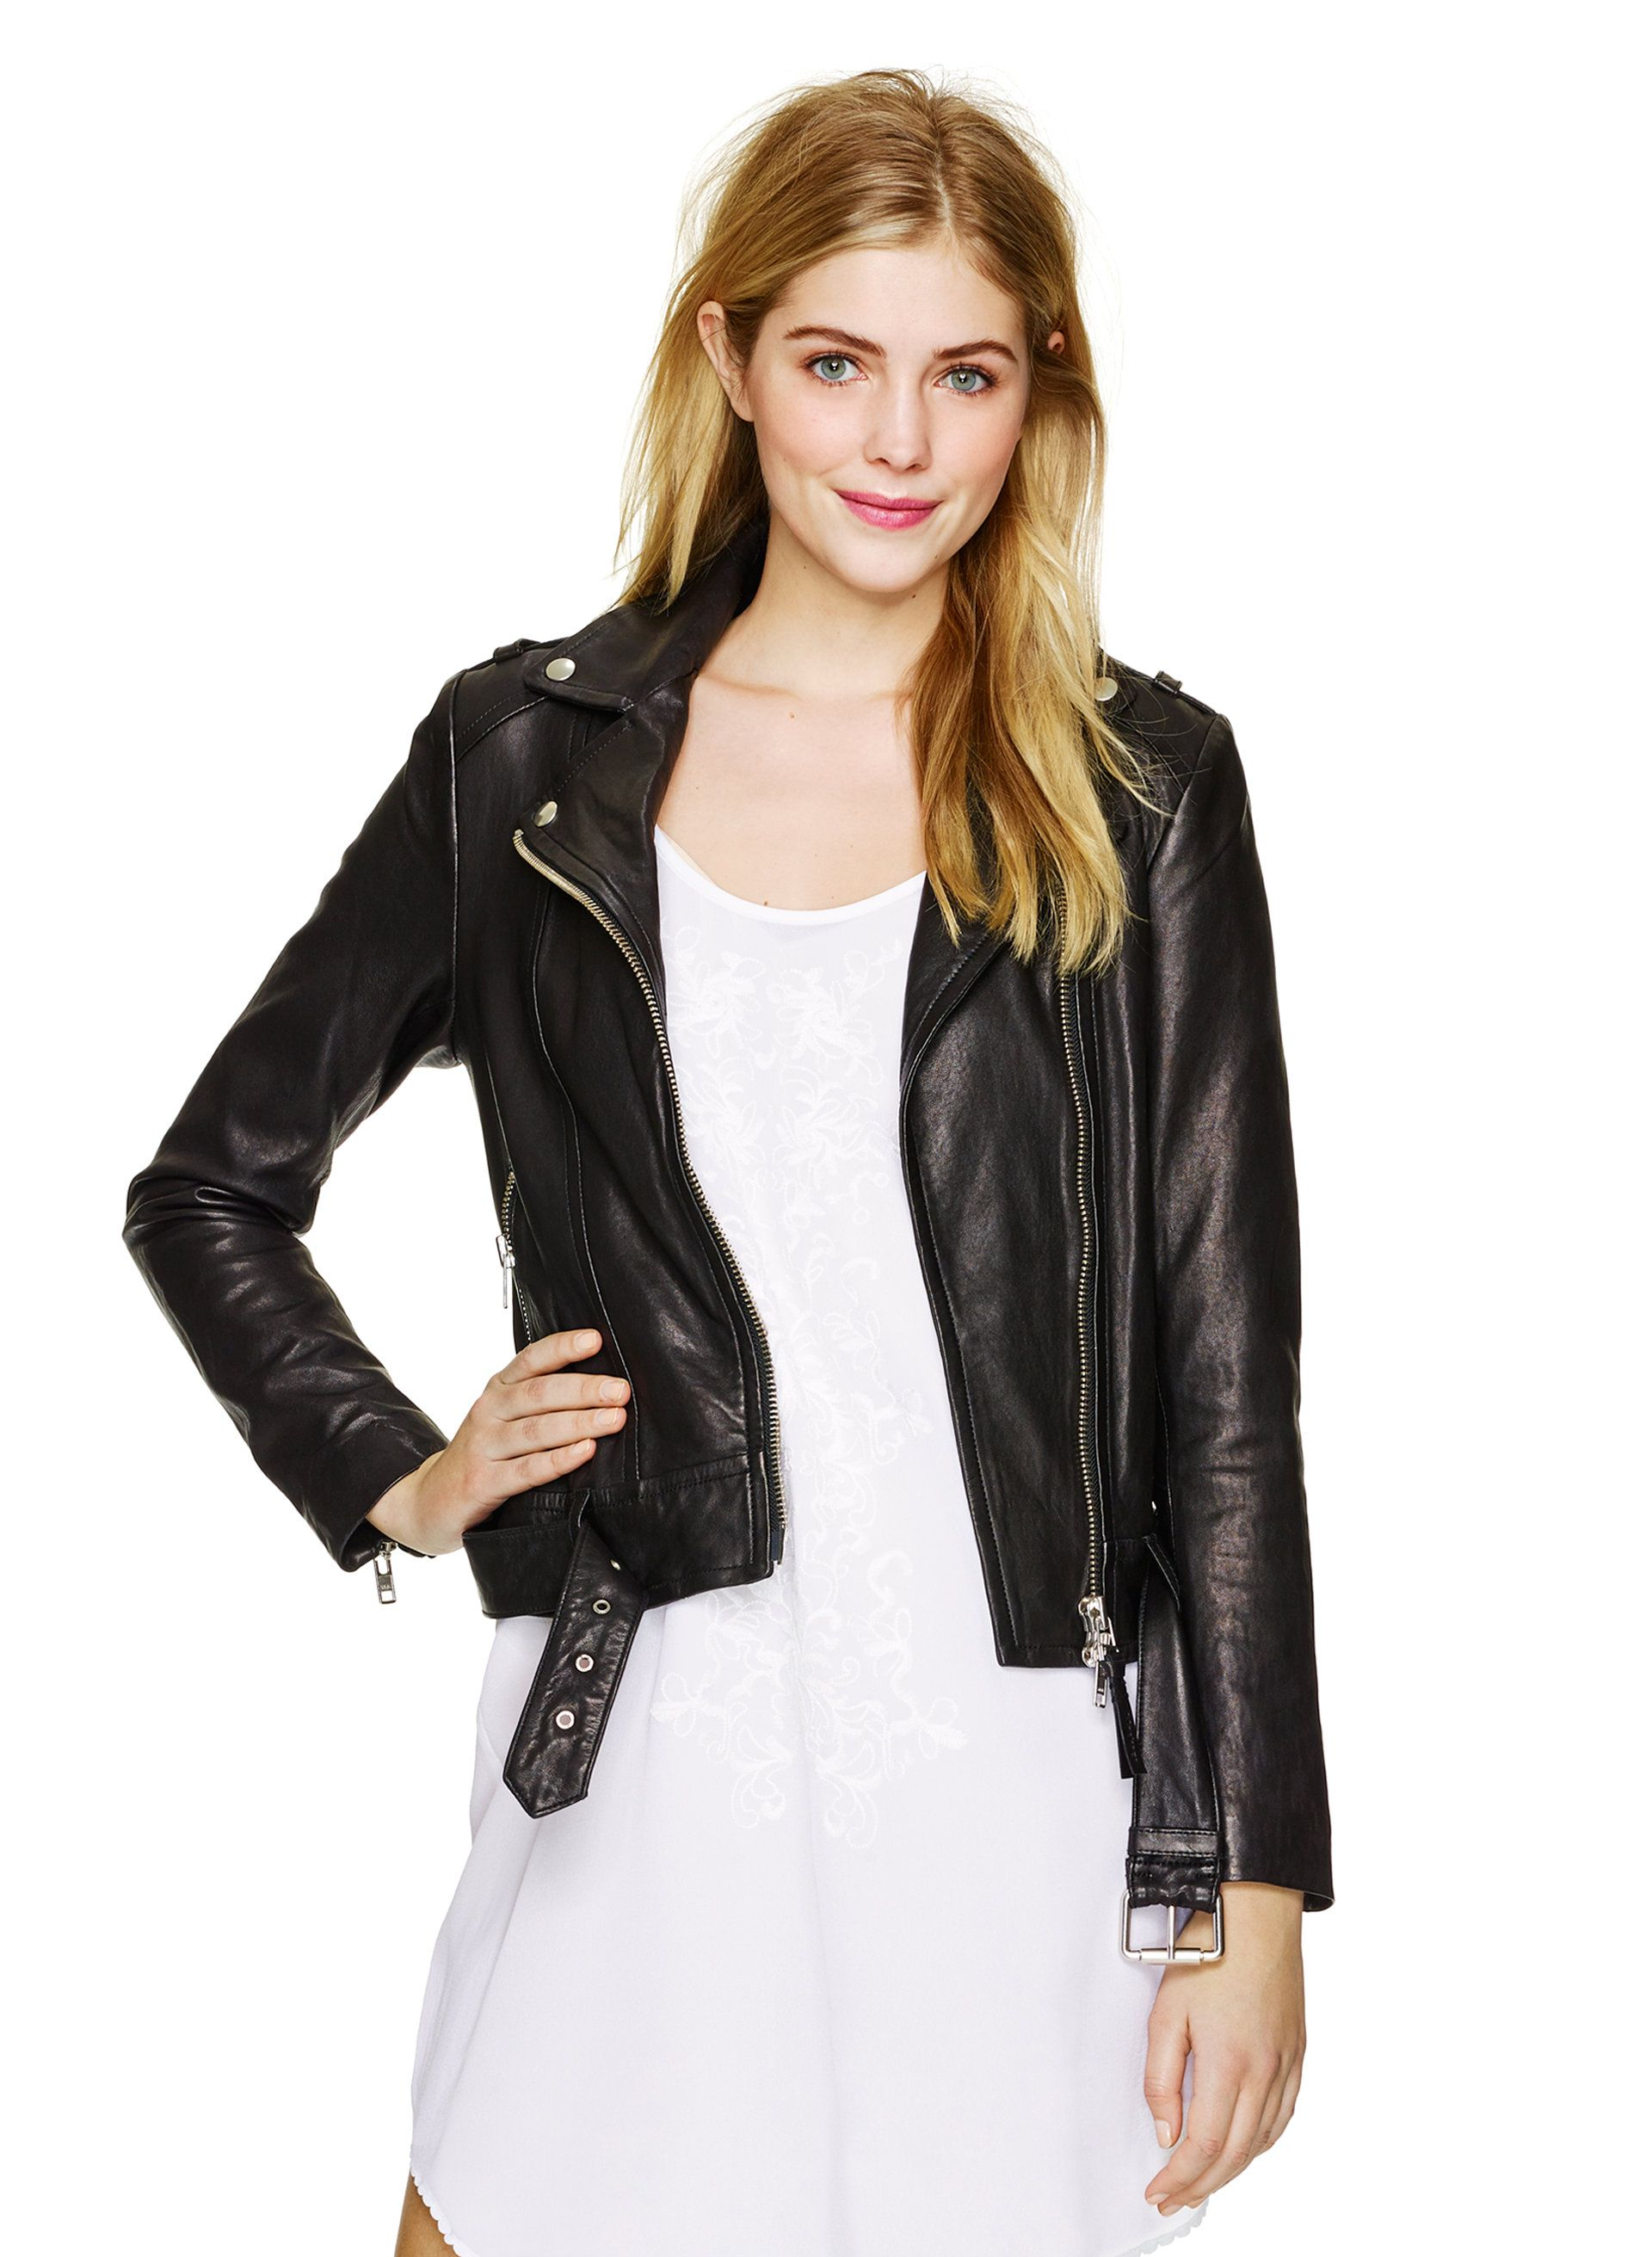 An Aritzia exclusive: a luxurious approach to iconic moto jackets... we  love the Mackage Florica leather jacket.